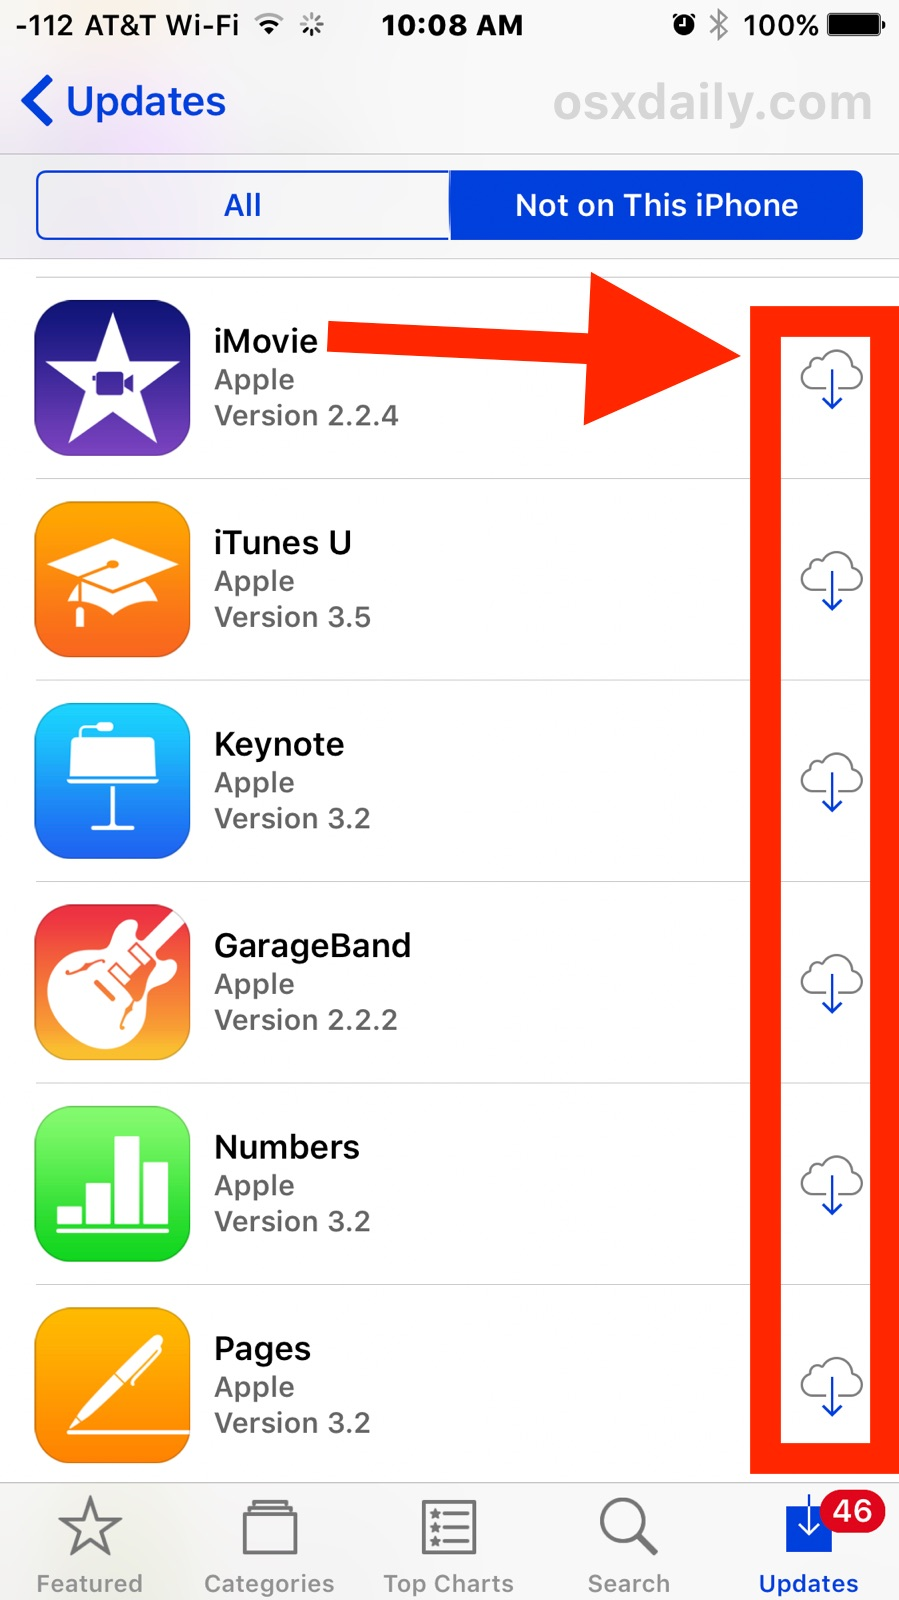 Re-download previously purchased apps that are not on the iOS device